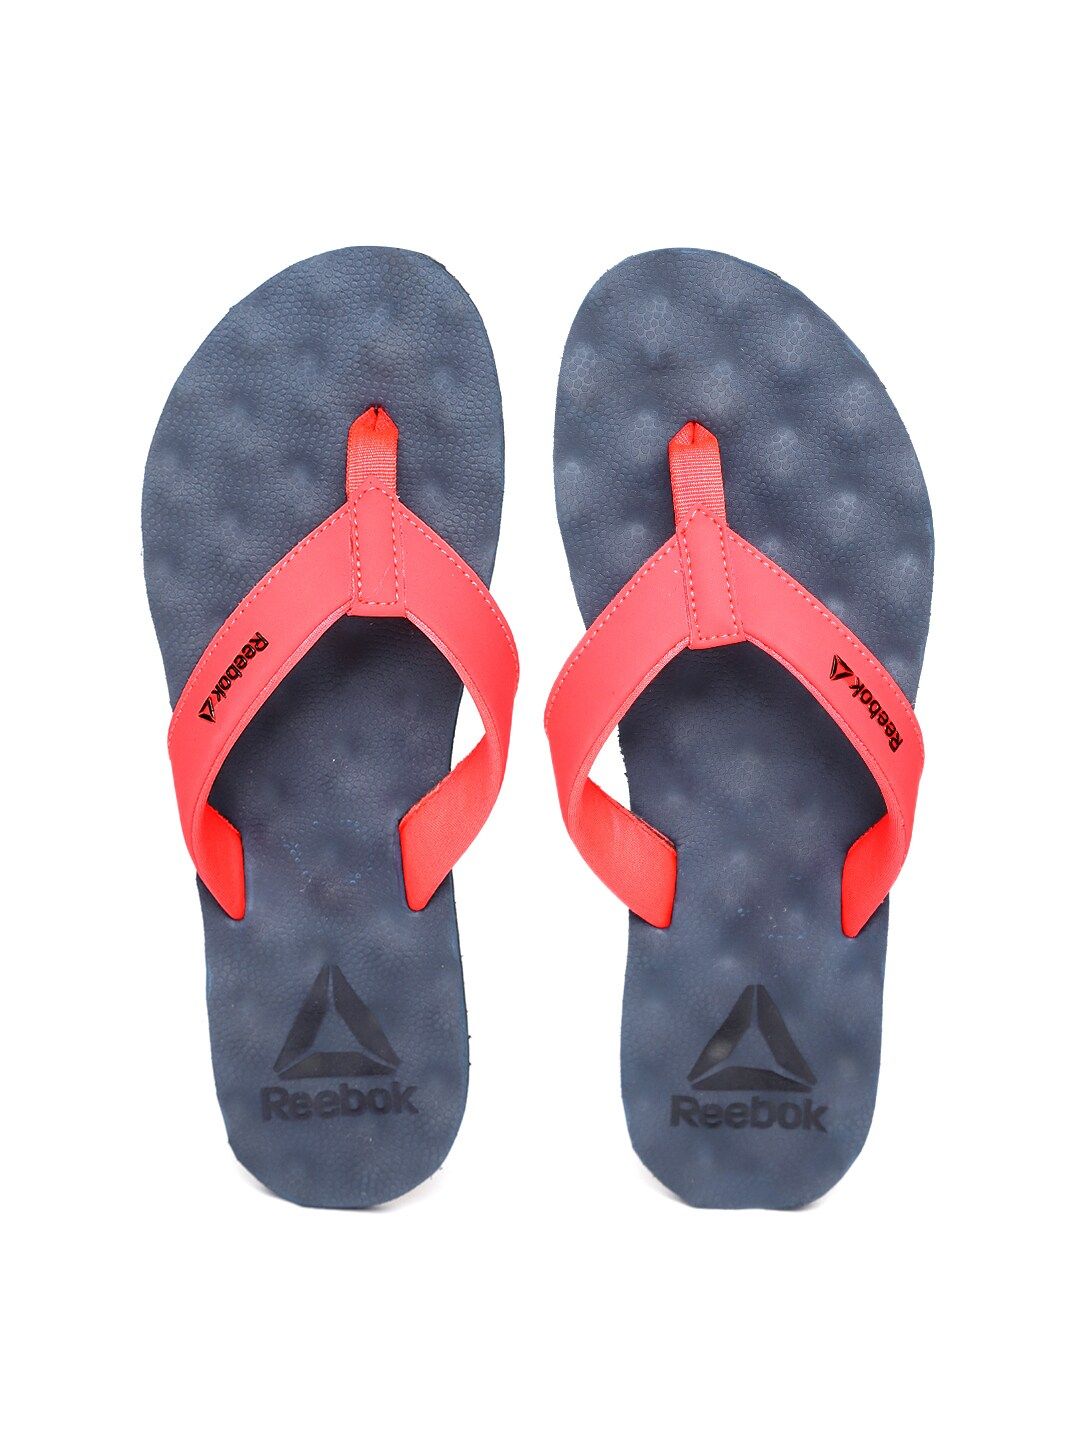 c830f858791 Reebok Trendy Flip Flops - Buy Reebok Trendy Flip Flops online in India